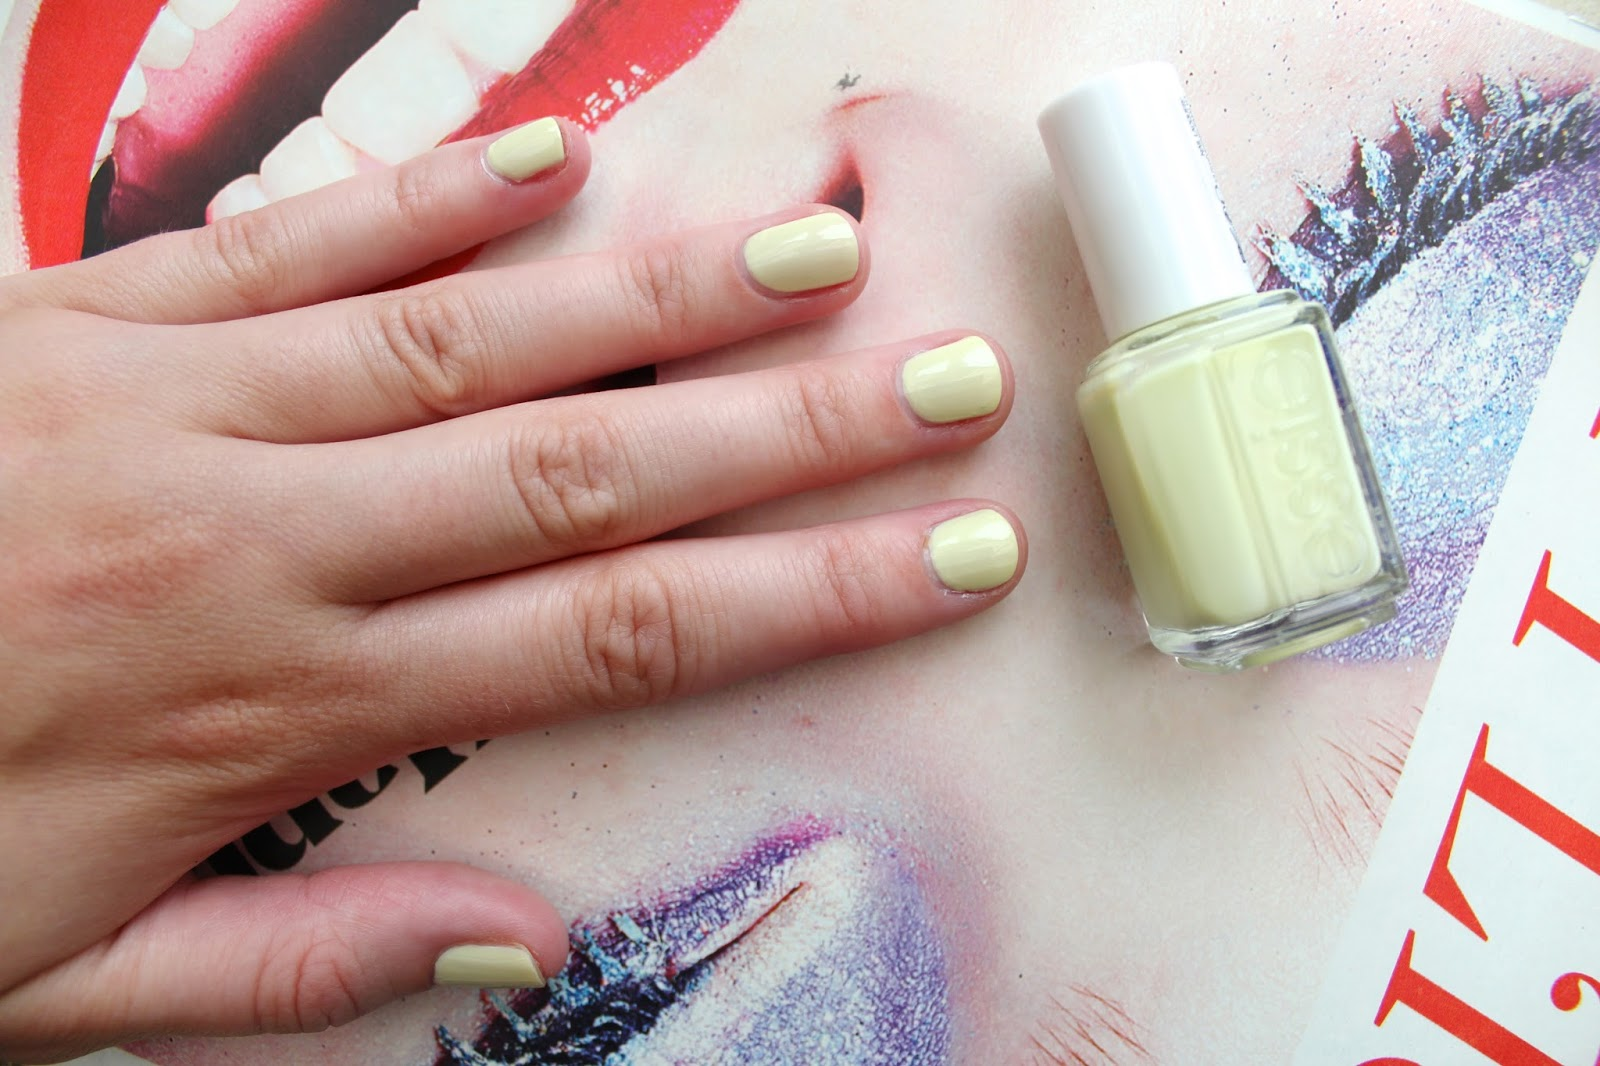 beauty blogger bblogger nails nail of the day essie summer collection chillato art boots drugstore lemon instagram blog